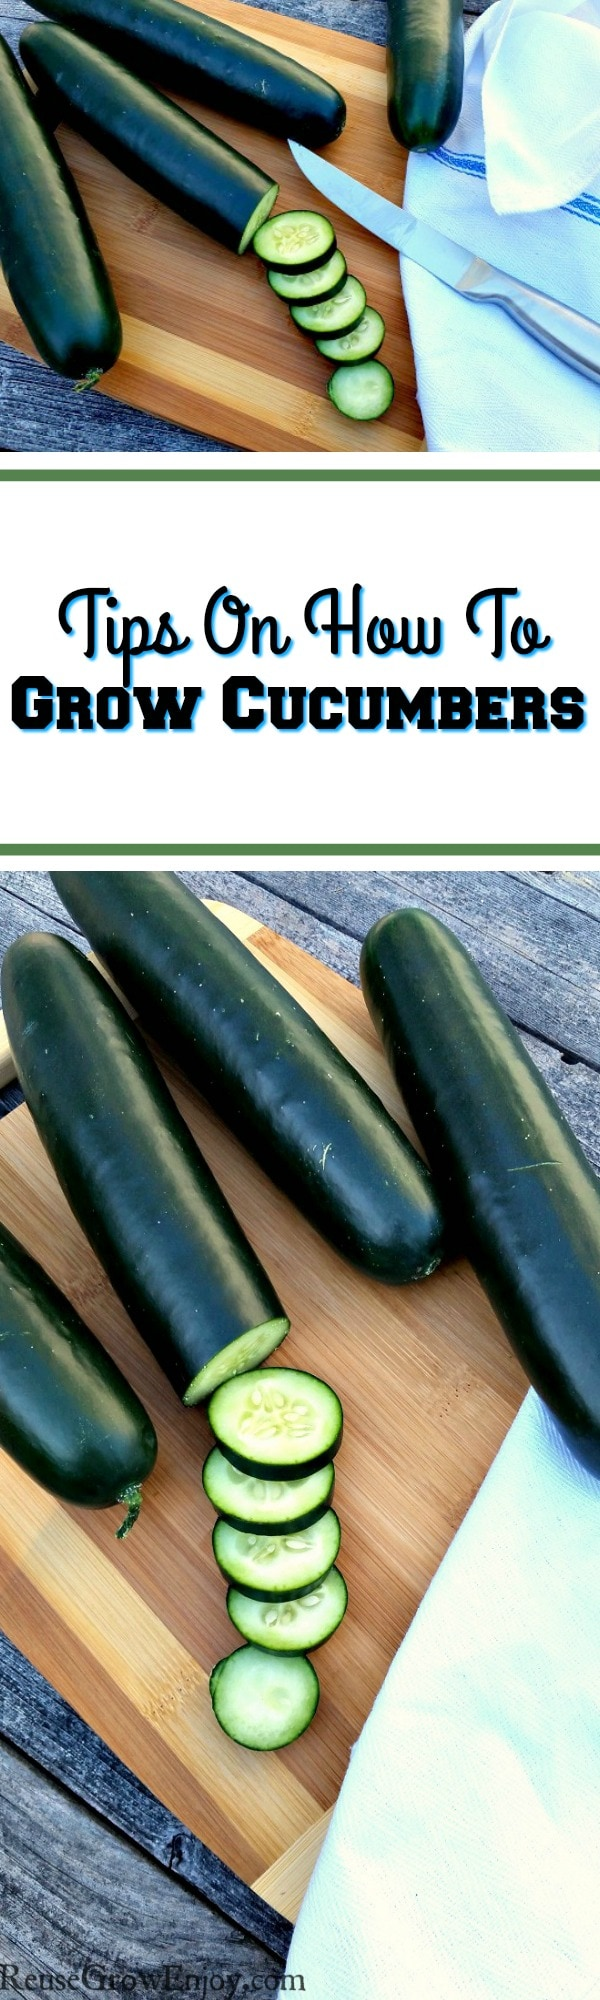 "When one thinks of gardens and growing food in the summer, many minds instantly think ""grow cucumbers"". But what if you don't know how to grow cucumbers? If that is the case, I am going to share a few great cucumber growing tips with you."